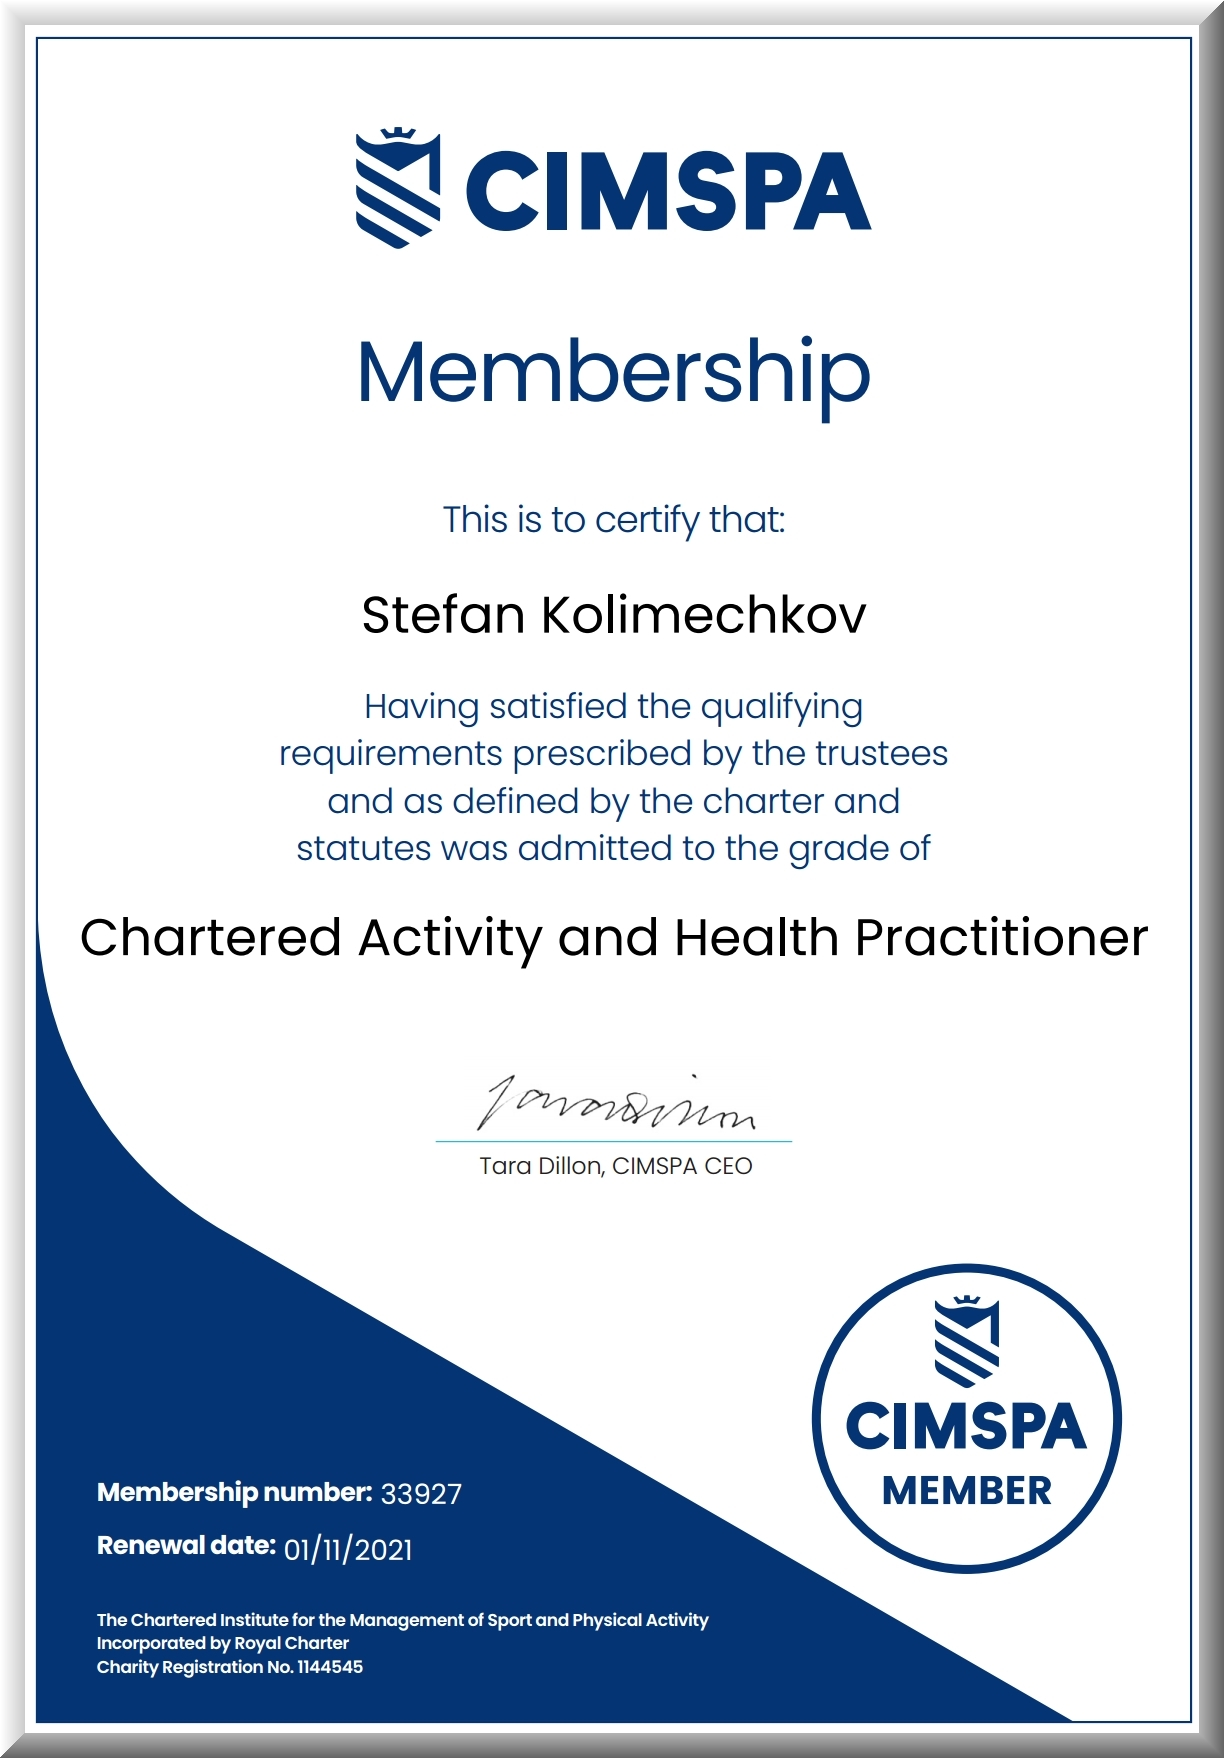 Chartered Activity and Health Practitioner of CIMSPA